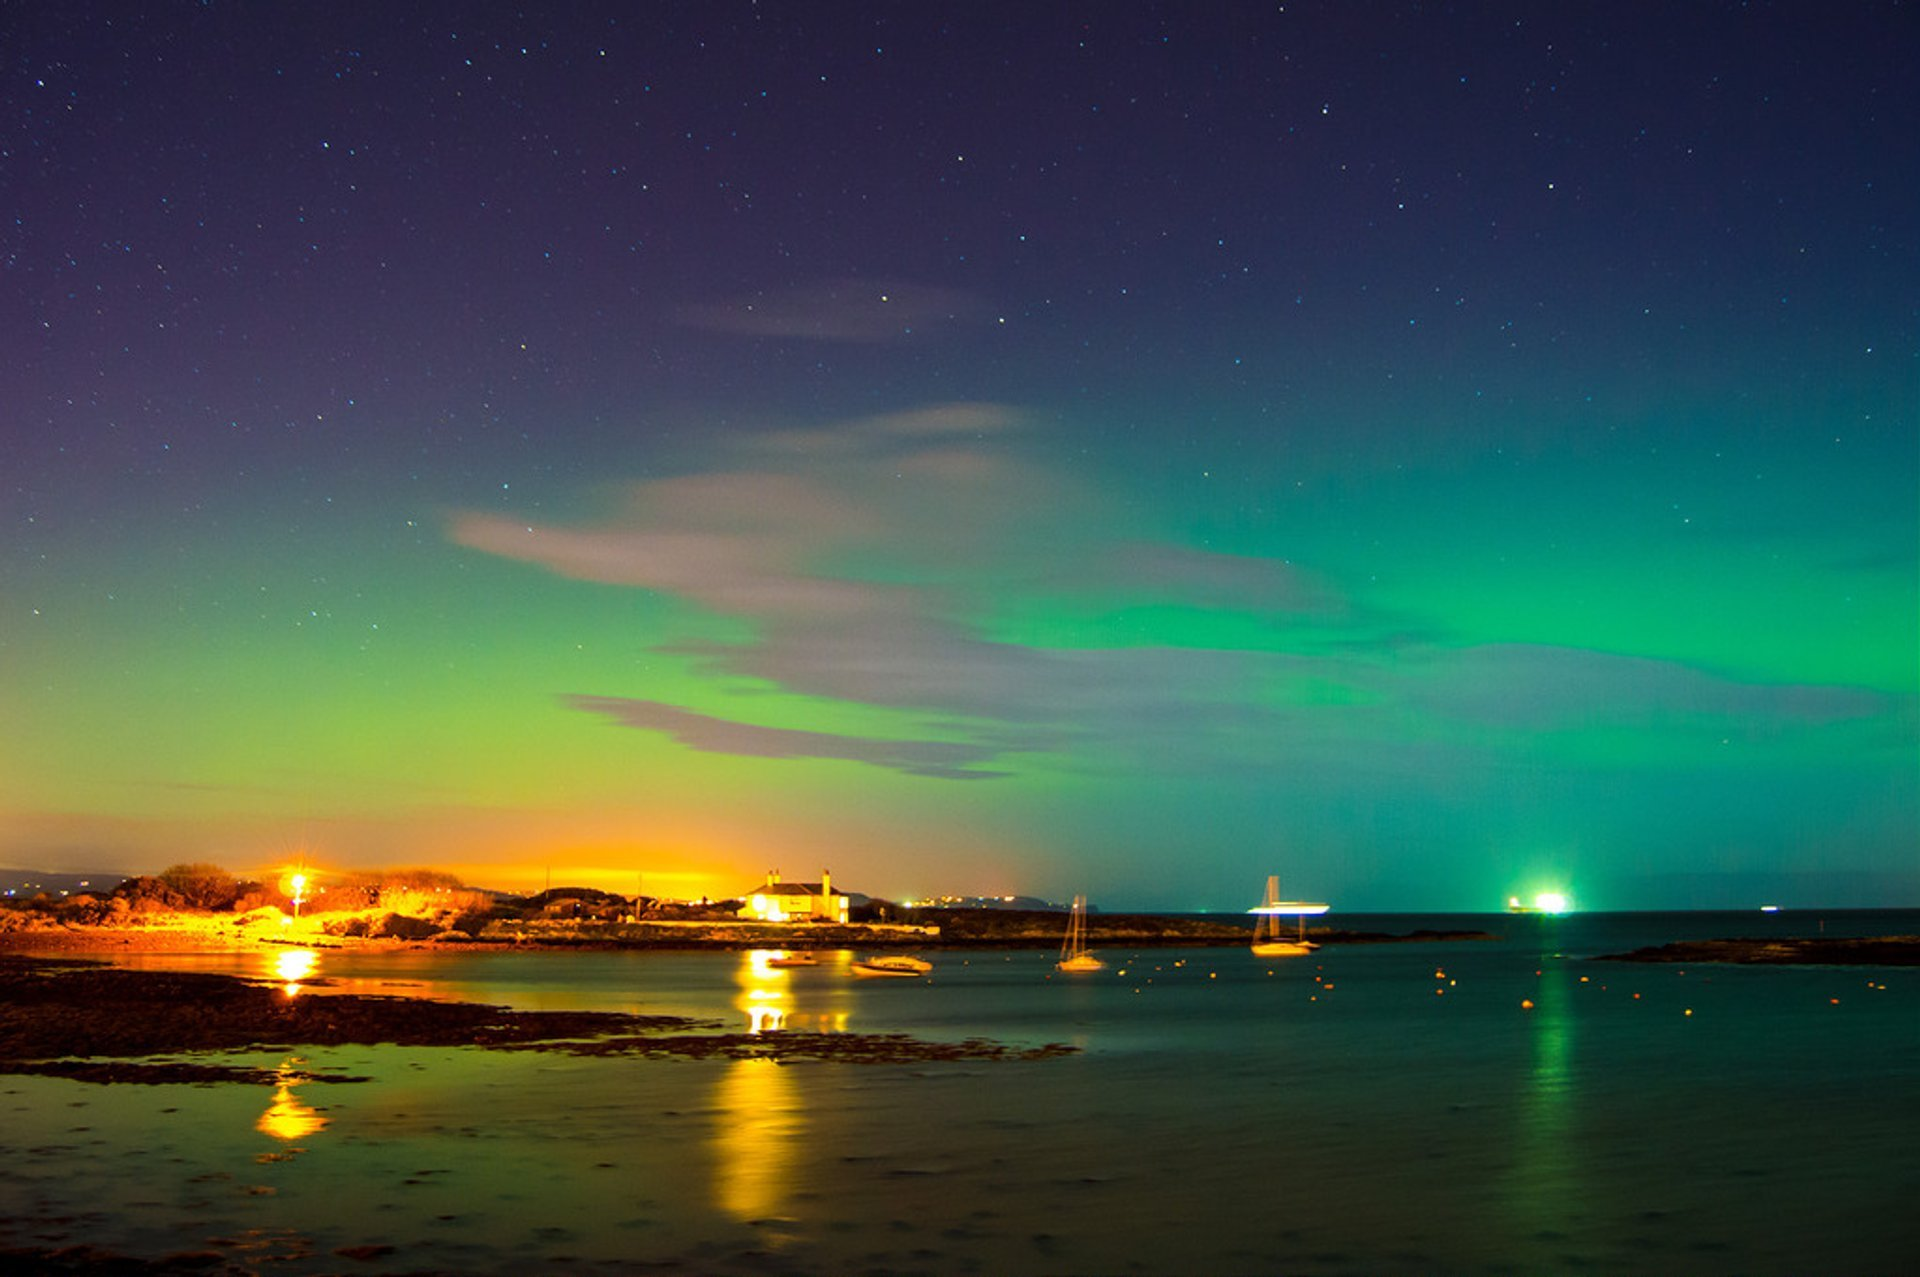 Nothern lights at Groomsport, County Down, Northern Ireland 2020